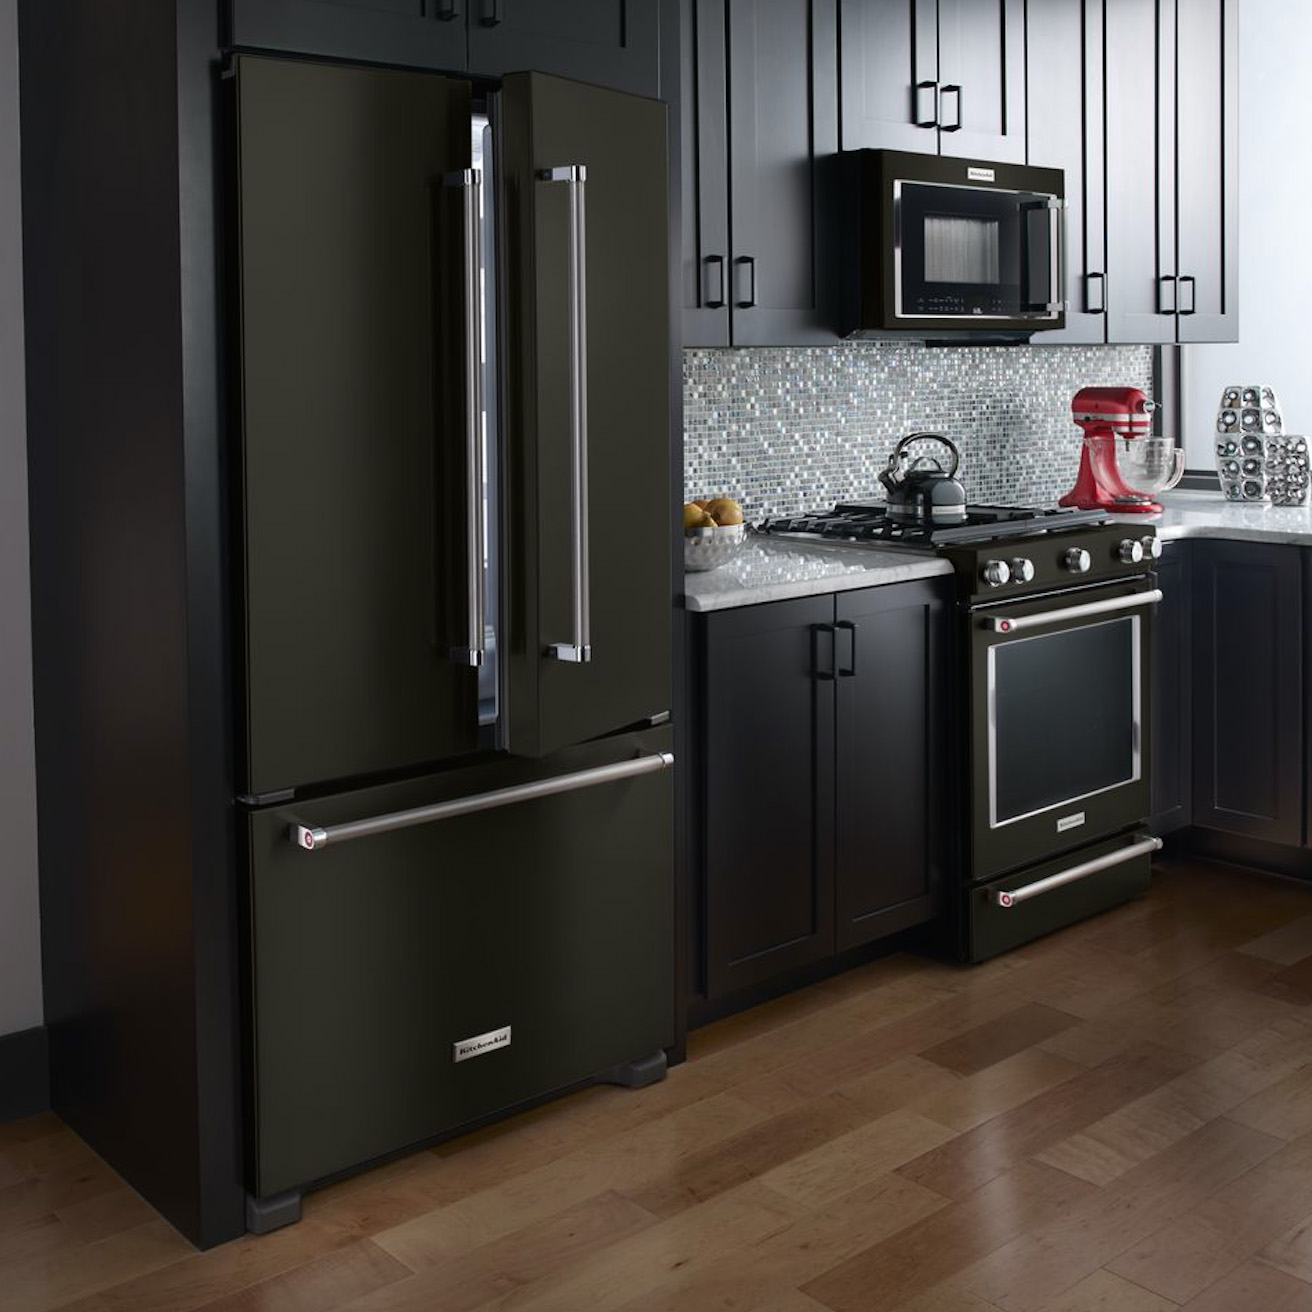 New Black Stainless Major Appliances From KitchenAid®